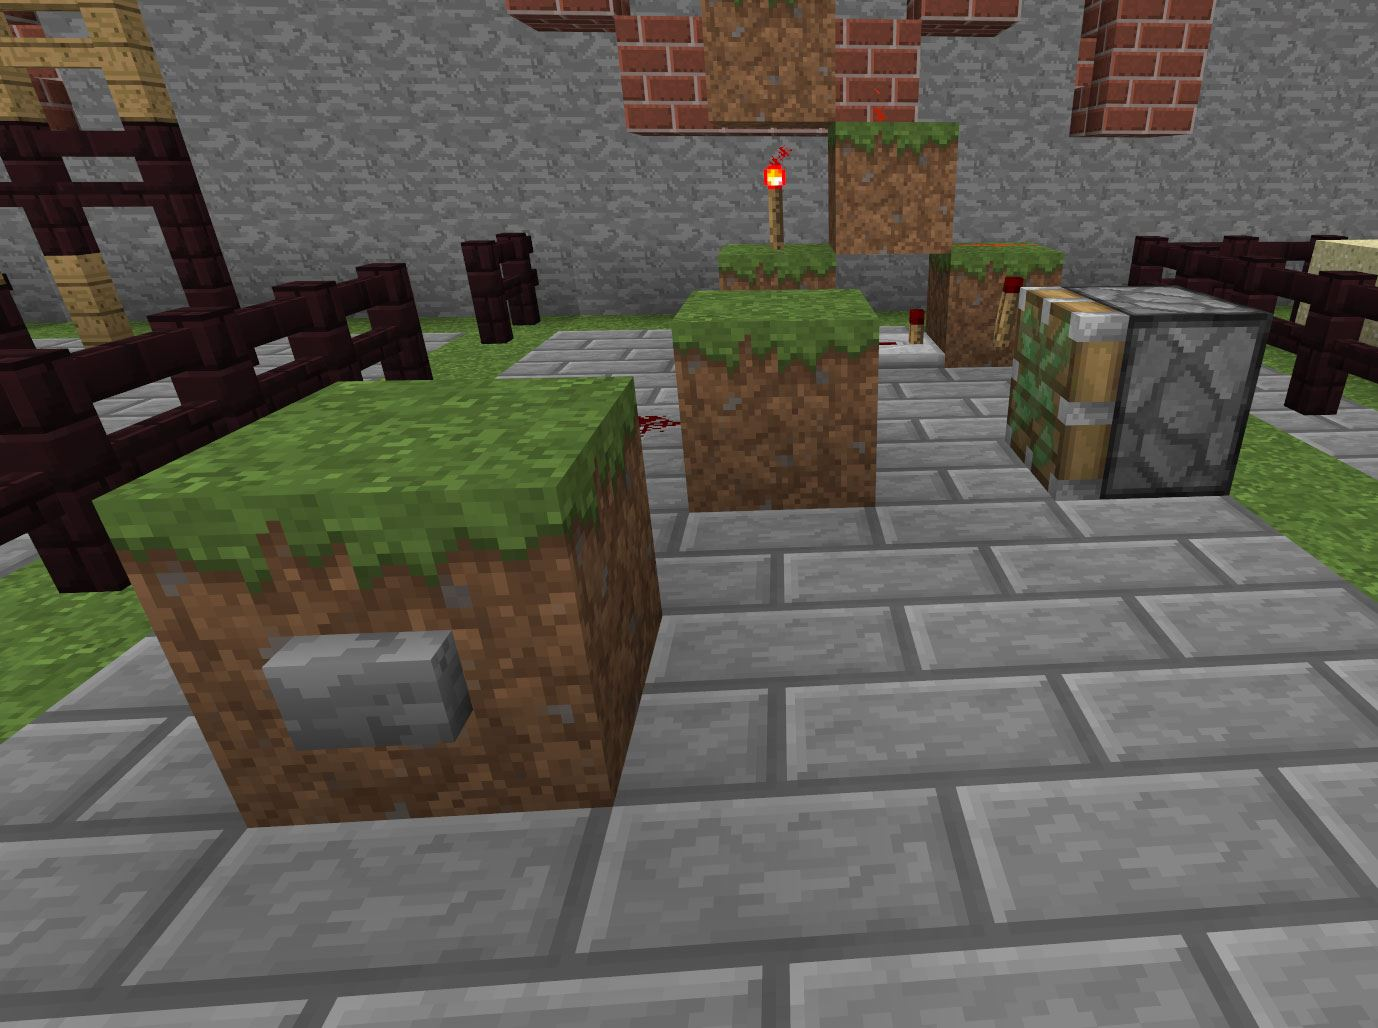 Wonderful image of 20 Tricks You Didn't Know You Could Do in Minecraft « Minecraft with #AF281C color and 1378x1028 pixels